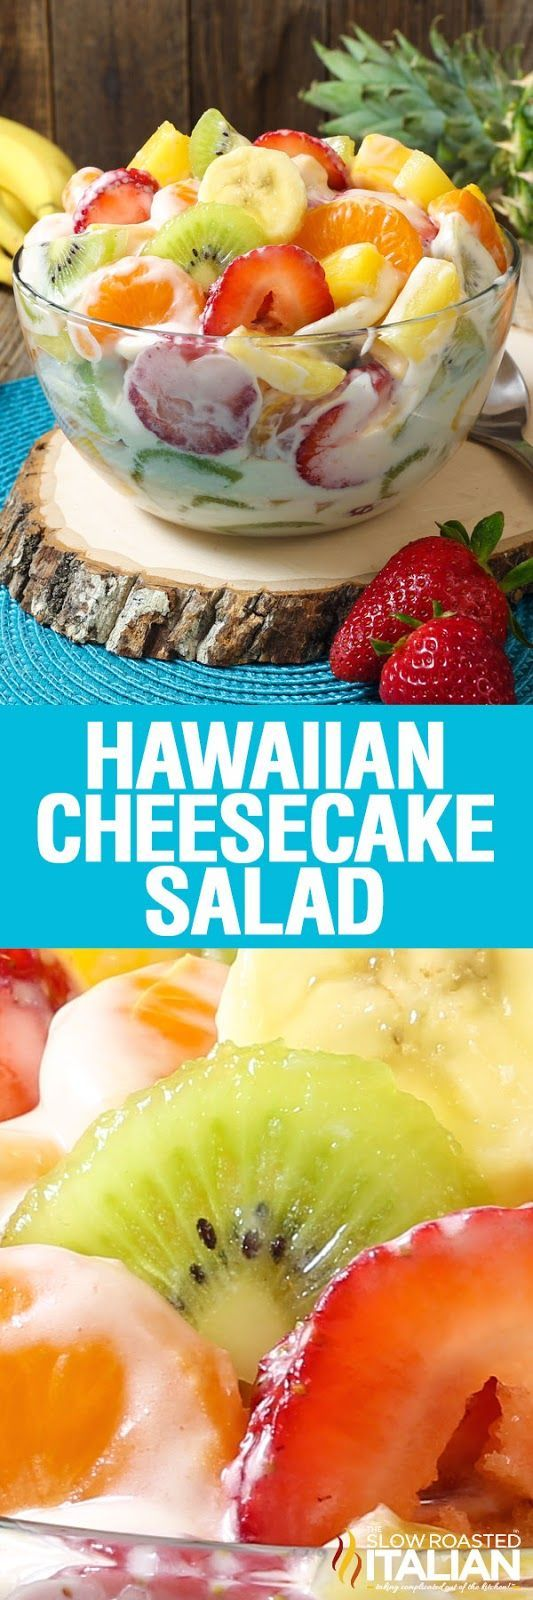 Hawaiian Cheesecake Salad comes together so simply with fresh tropical fruit and a rich and creamy cheesecake filling to create the most glorious fruit salad ever! Every bite is absolutely bursting with island flavor and you are going to go nuts over this recipe!